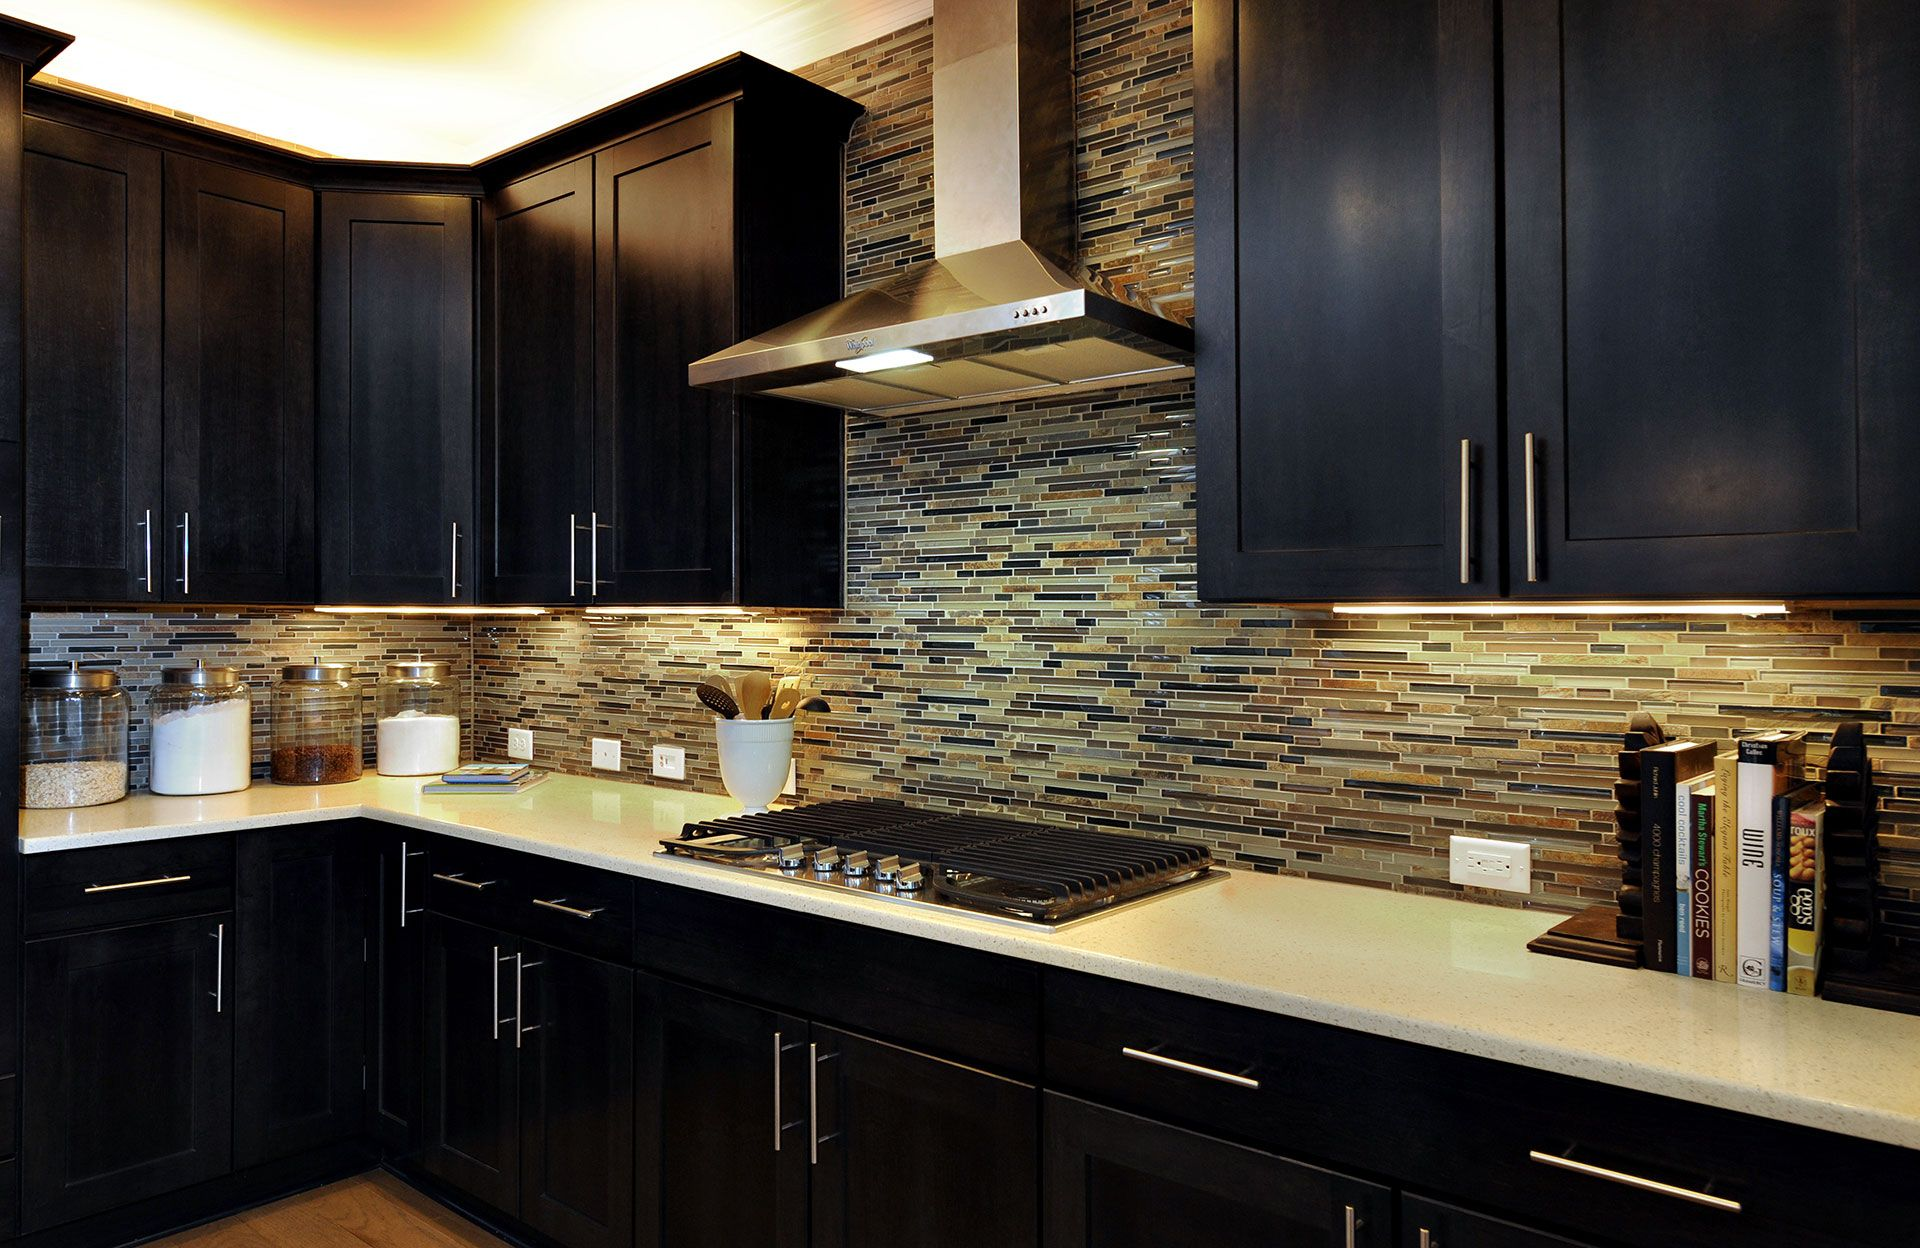 Cabinet Makers Durham Nc The Bradley Model Kitchen With Tiled Backsplash Raleigh Nc